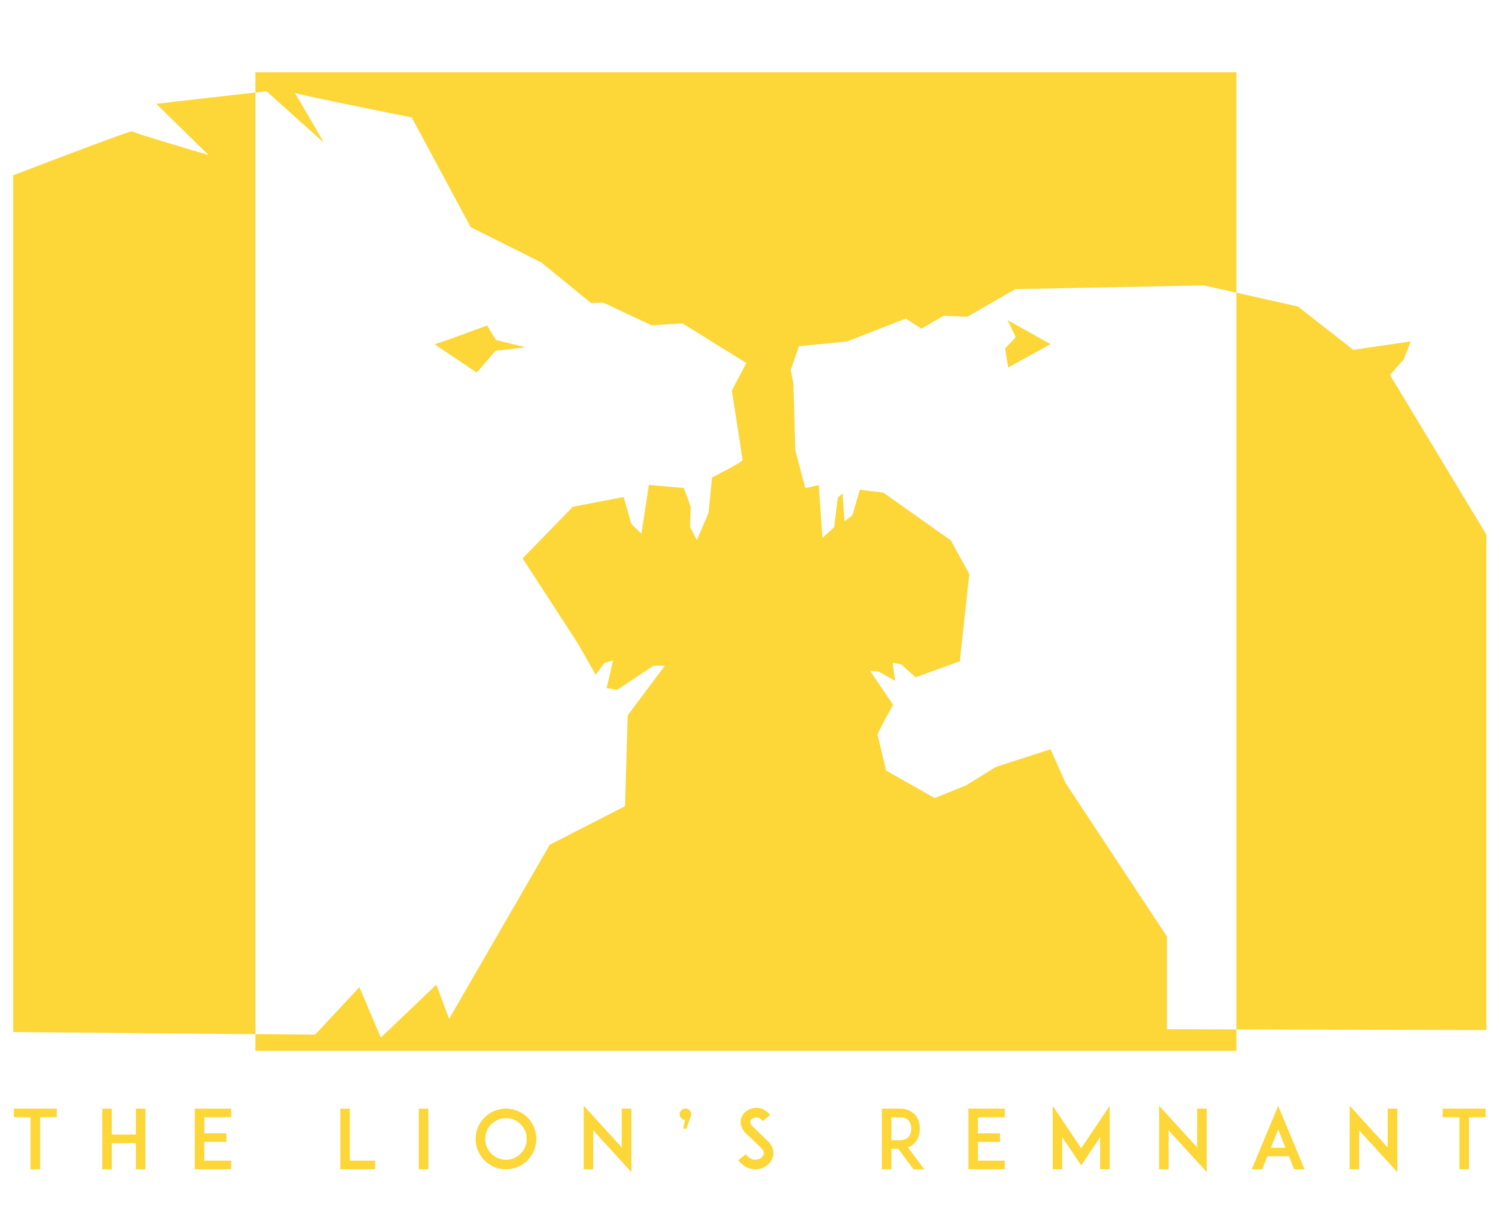 The Lion's Remnant